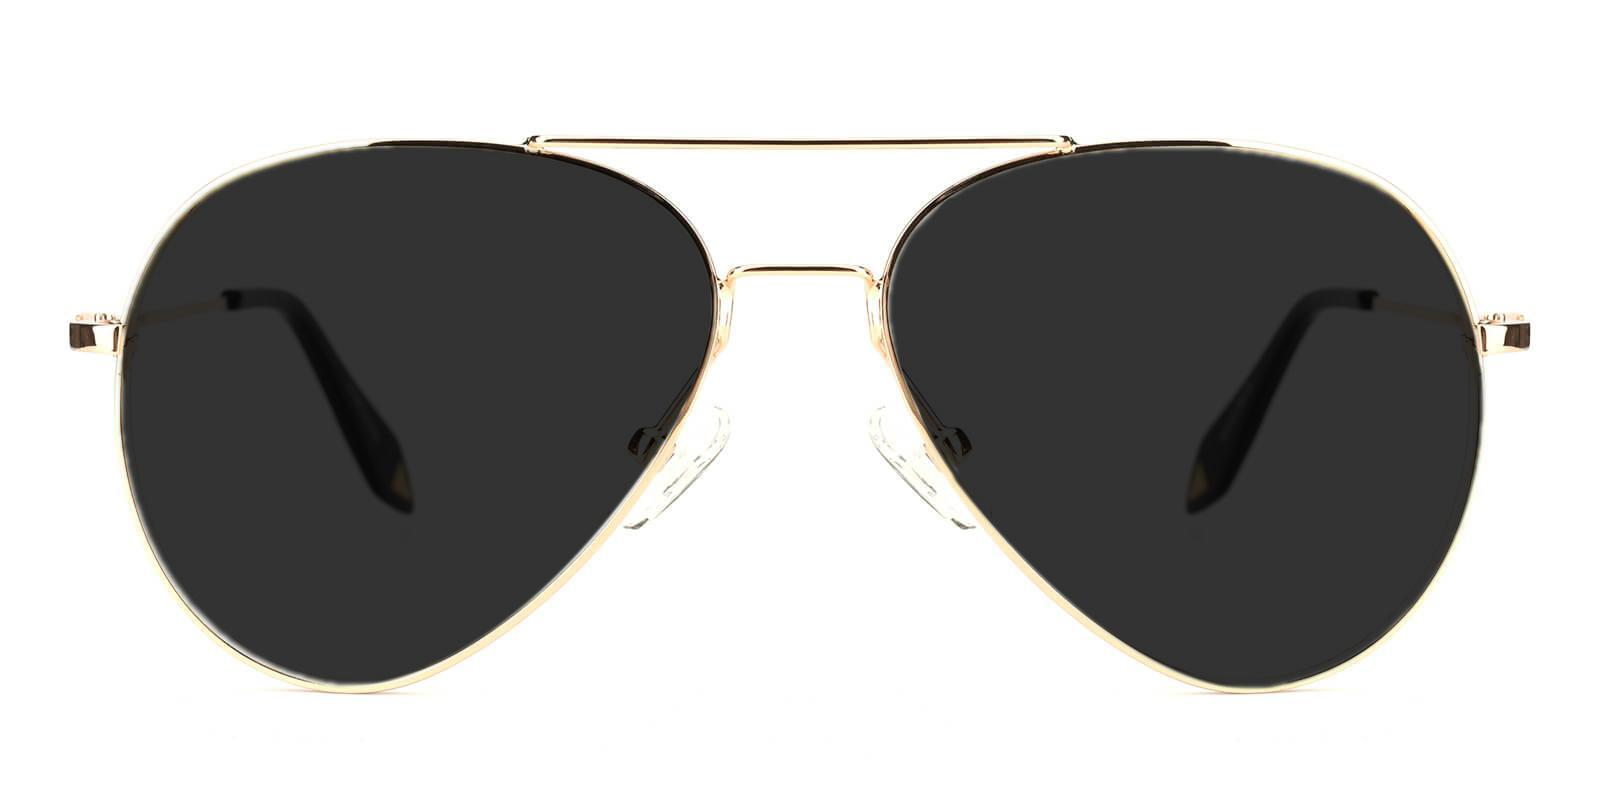 Dapper Gold Metal NosePads , Sunglasses Frames from ABBE Glasses